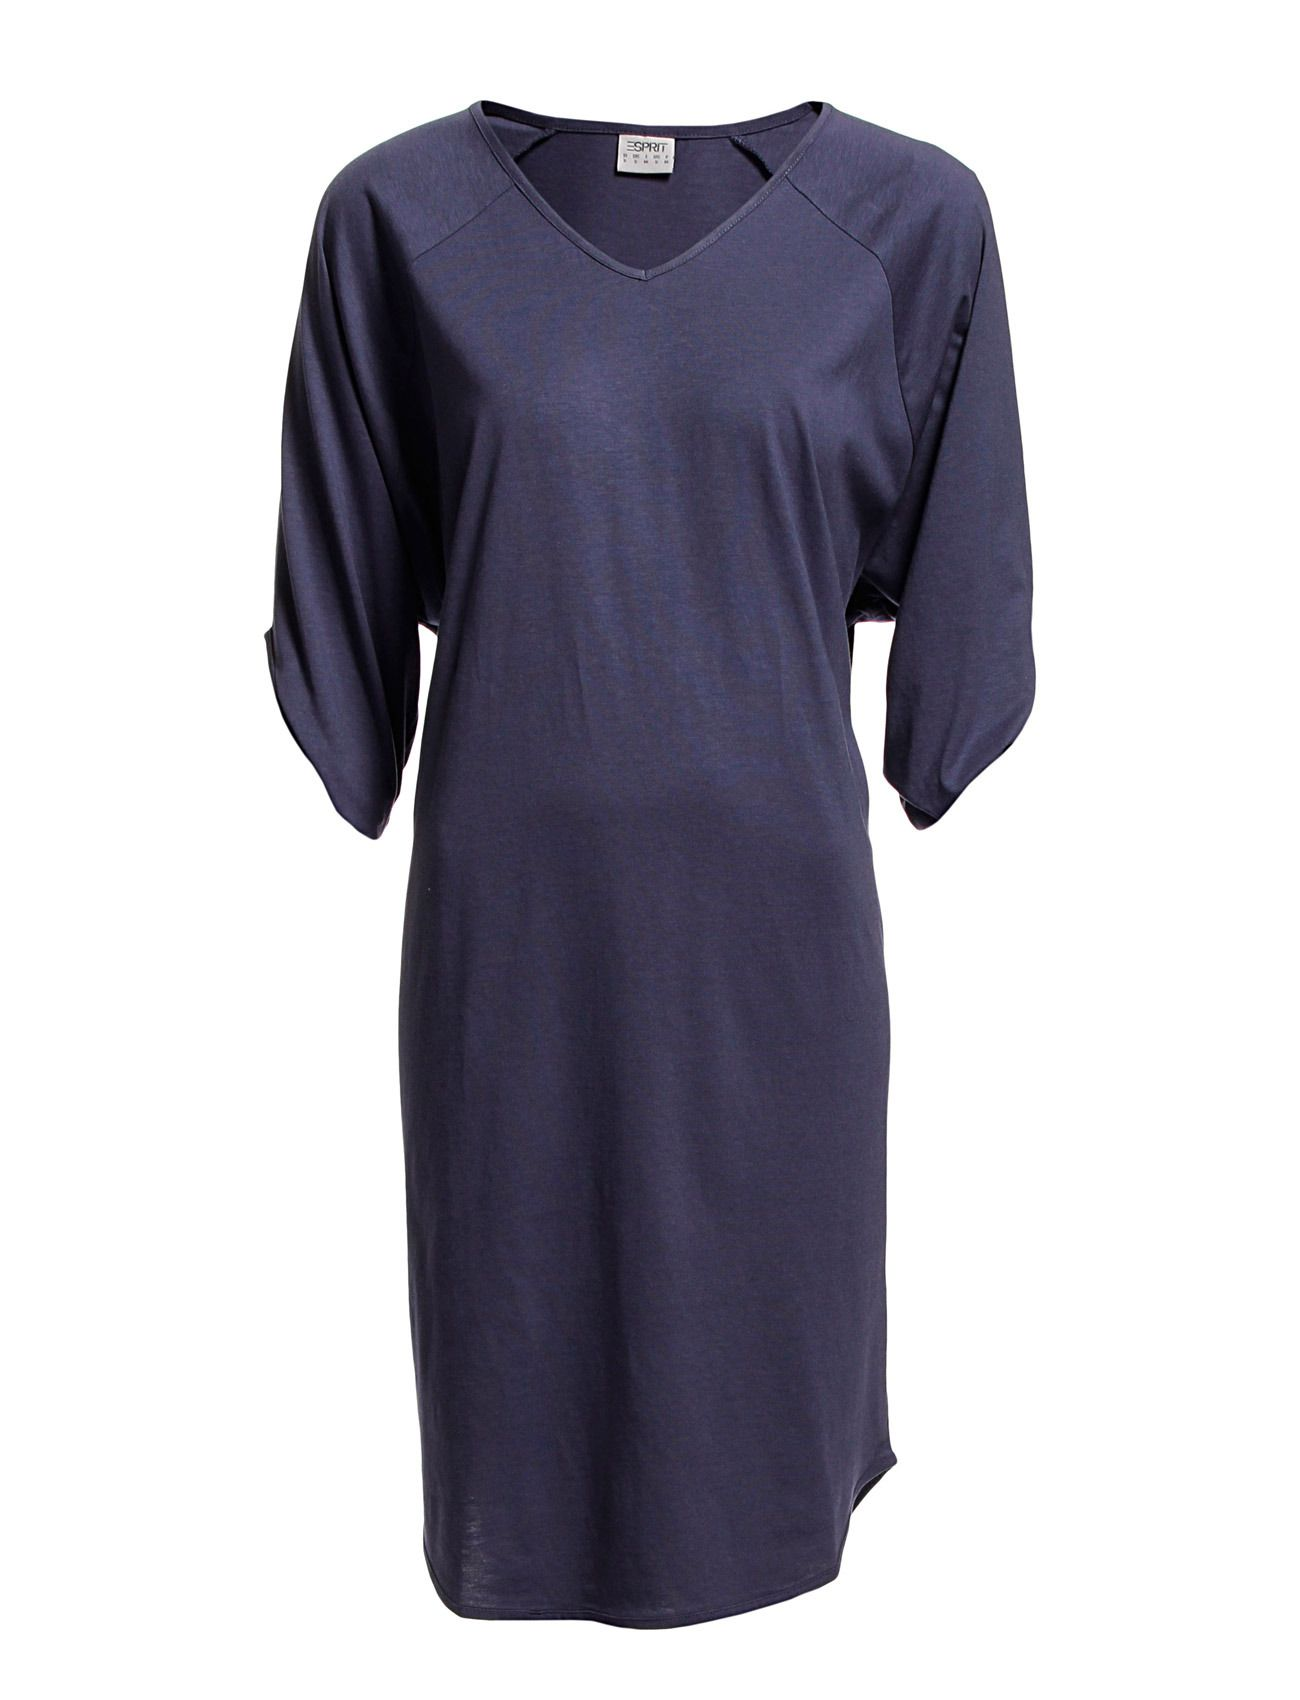 knitted dresses - Knitted dress from Esprit.  *Three-quarter length sleeves  *V- neckline